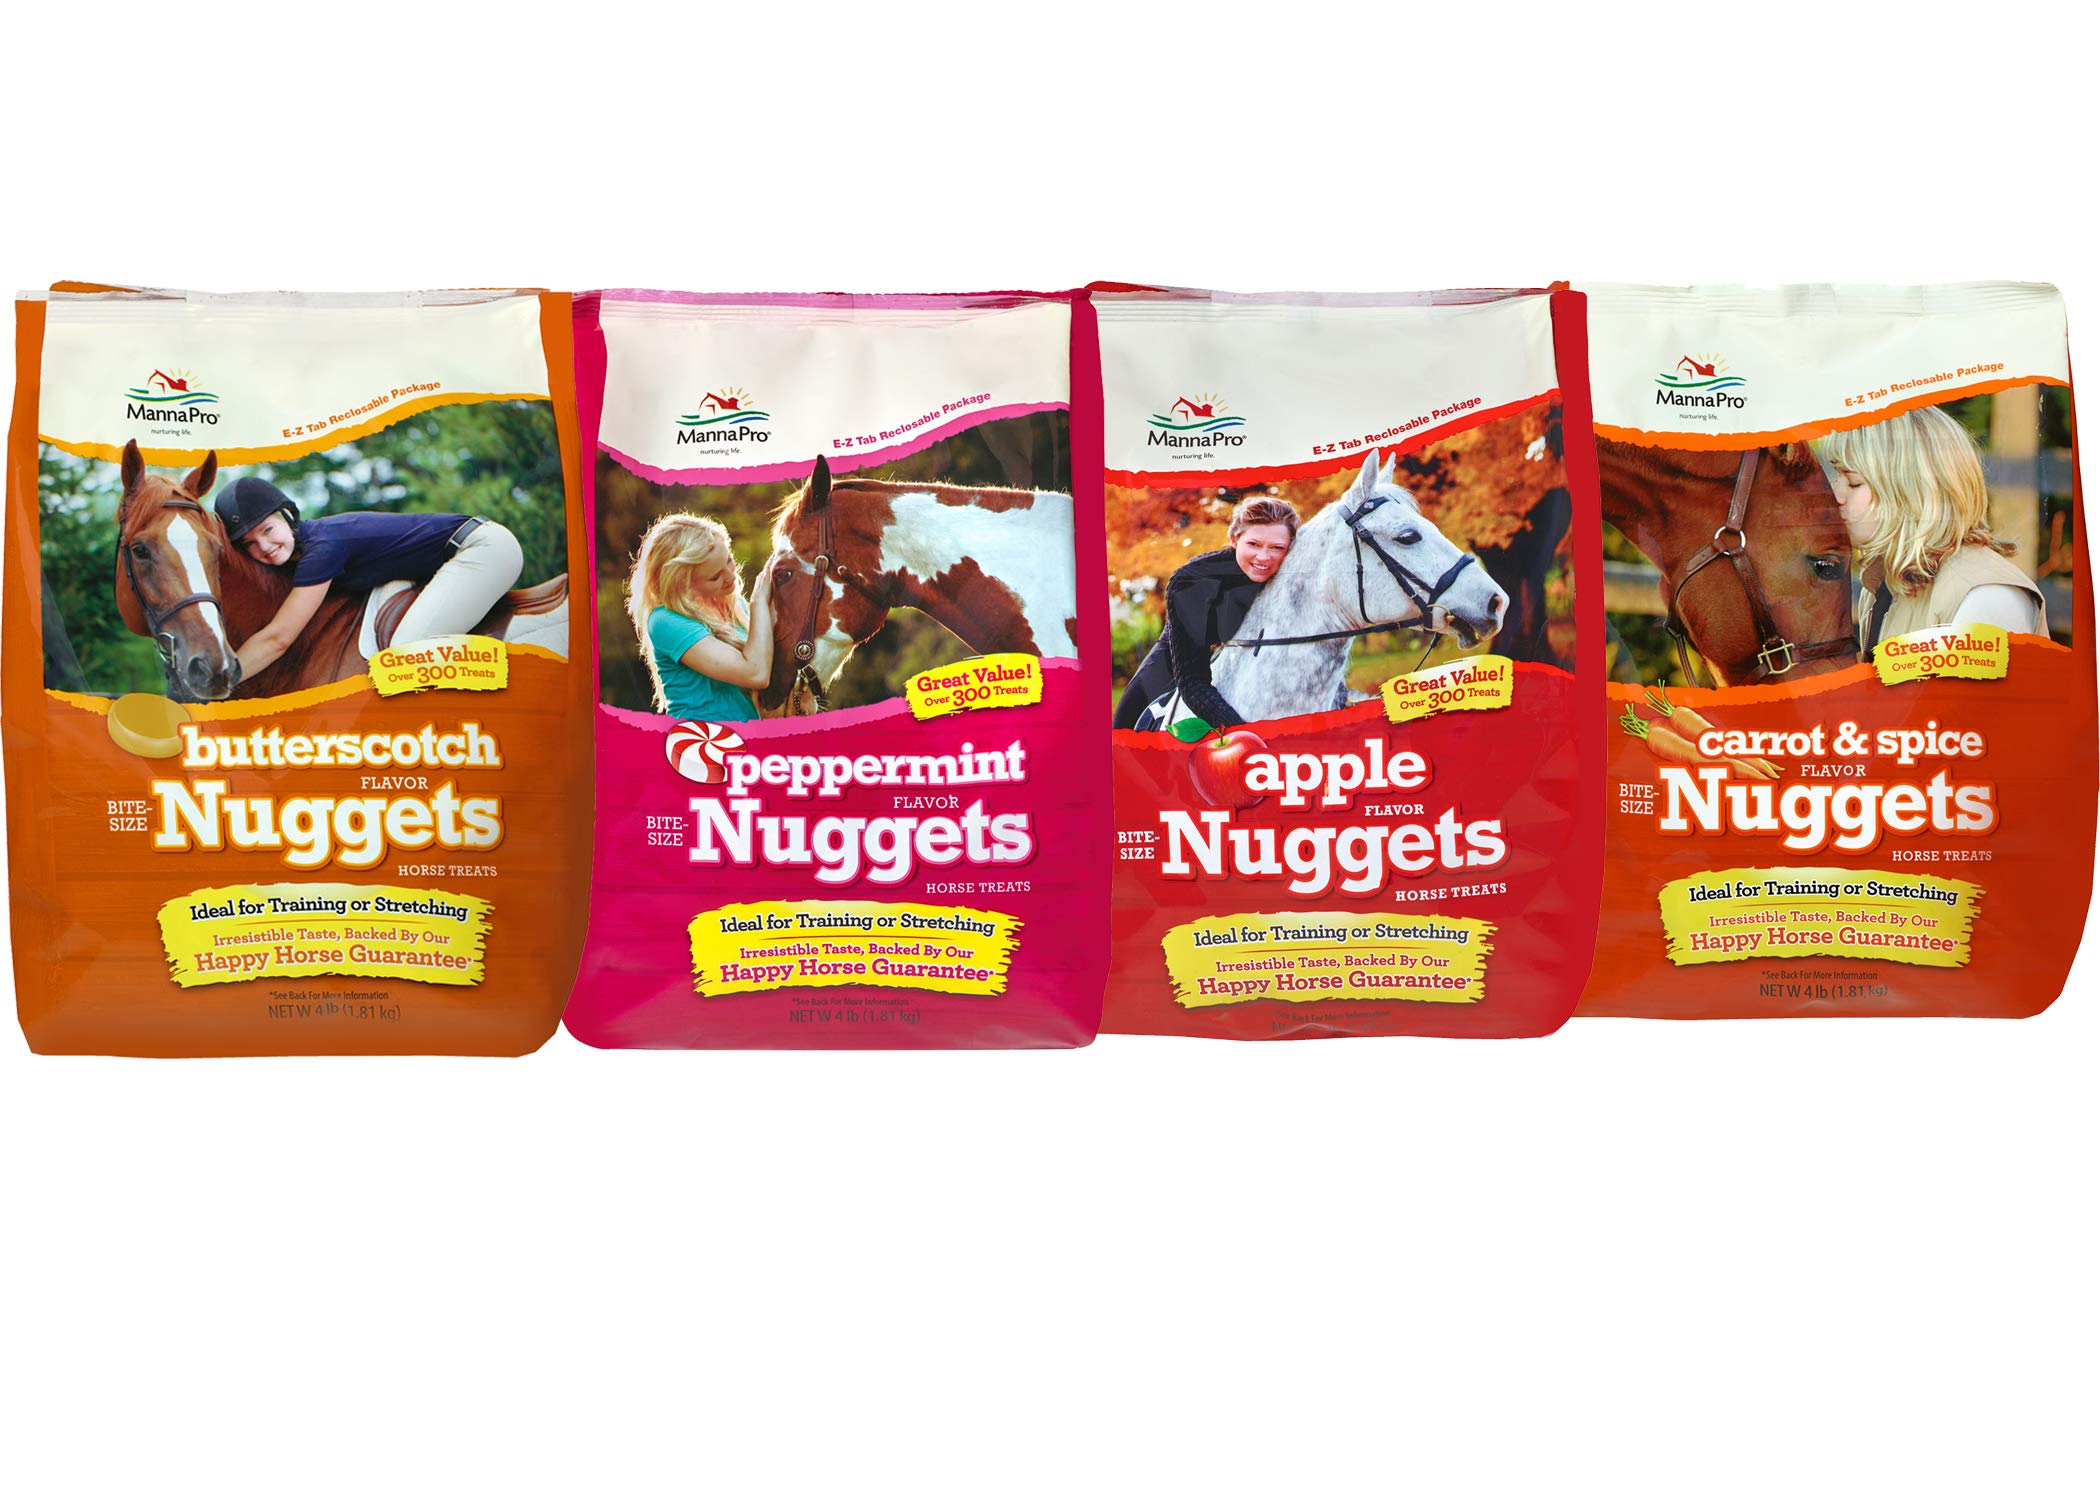 Manna Pro Horse Treat Variety Pack, 4lb Bags of Butterscotch, Apple, Peppermint, and Carrot (16 Pounds Total)